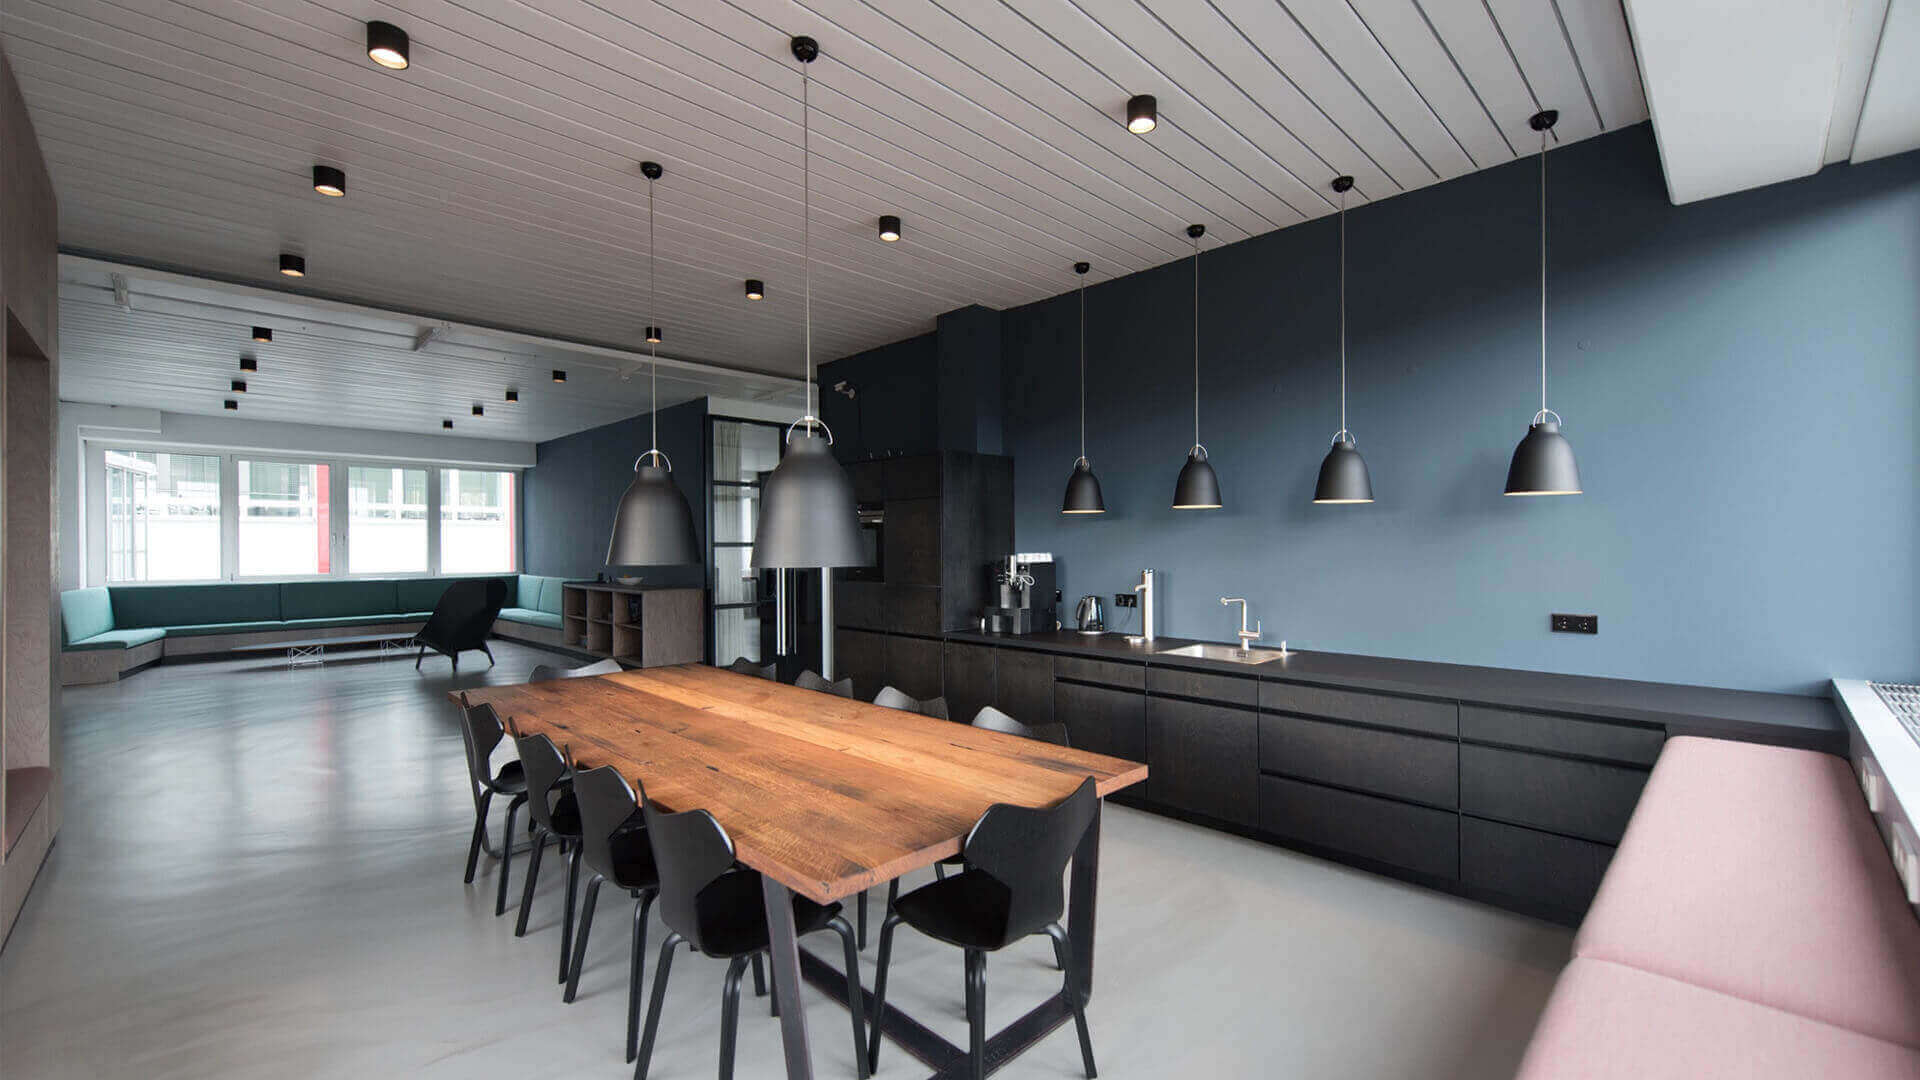 Space-Conscious Home in the Odds with Innovative Design